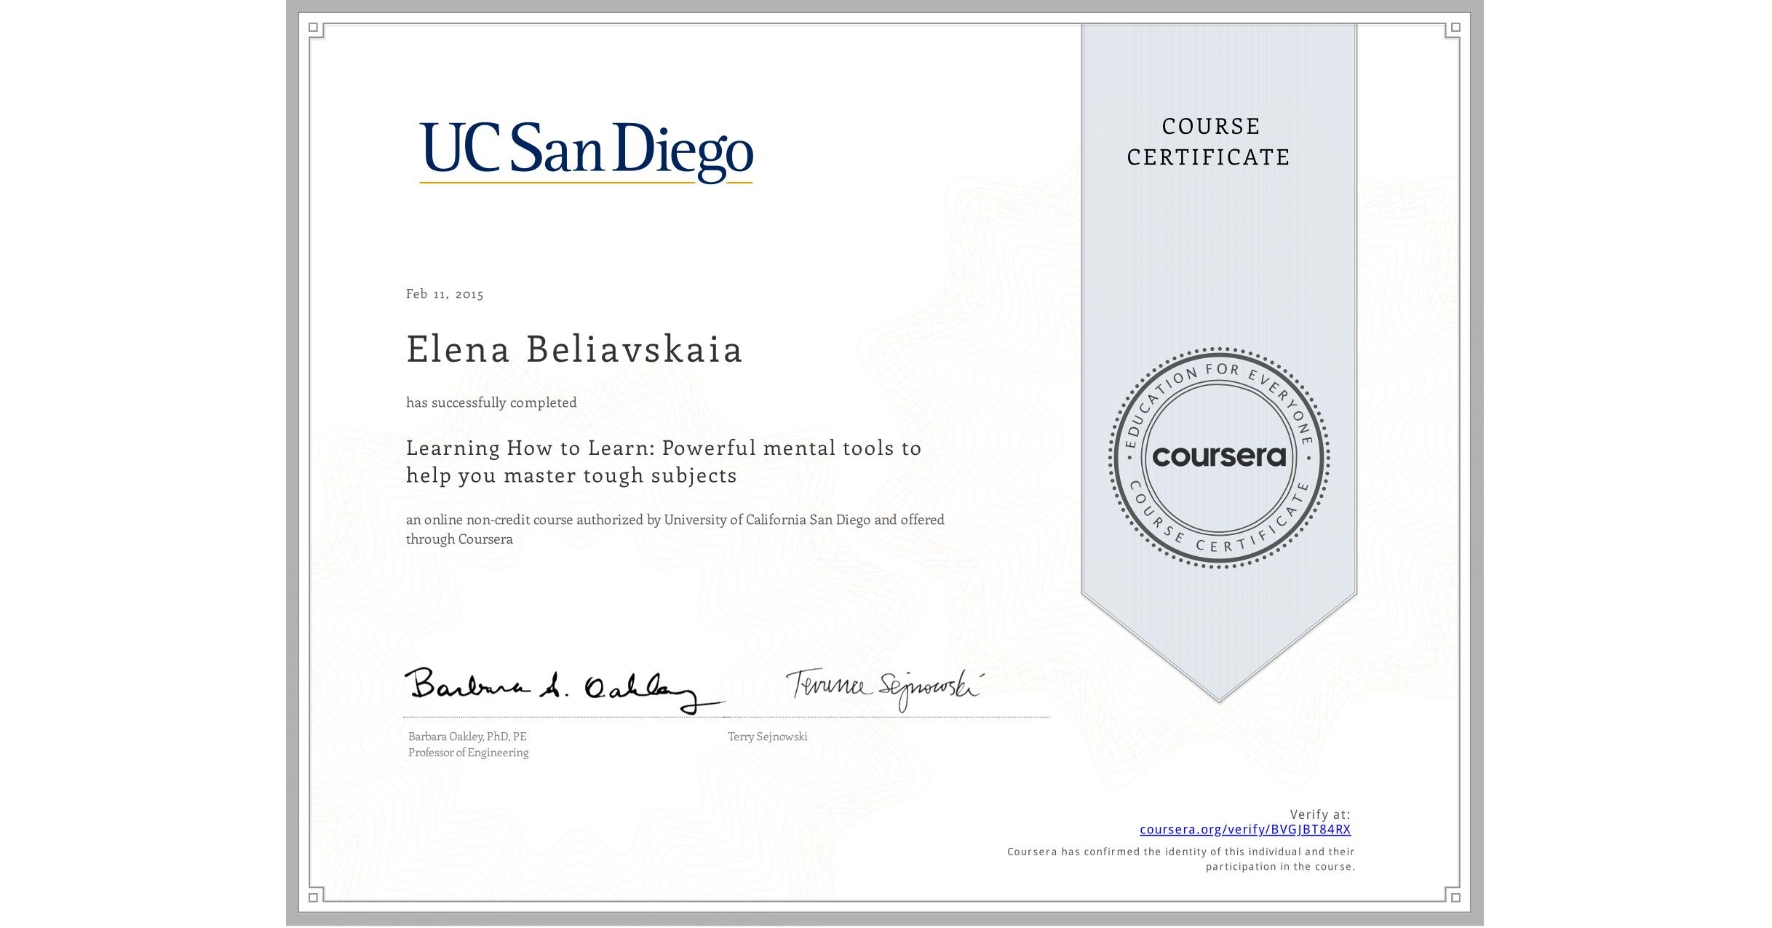 View certificate for Elena Beliavskaia, Learning How to Learn: Powerful mental tools to help you master tough subjects, an online non-credit course authorized by University of California San Diego and offered through Coursera